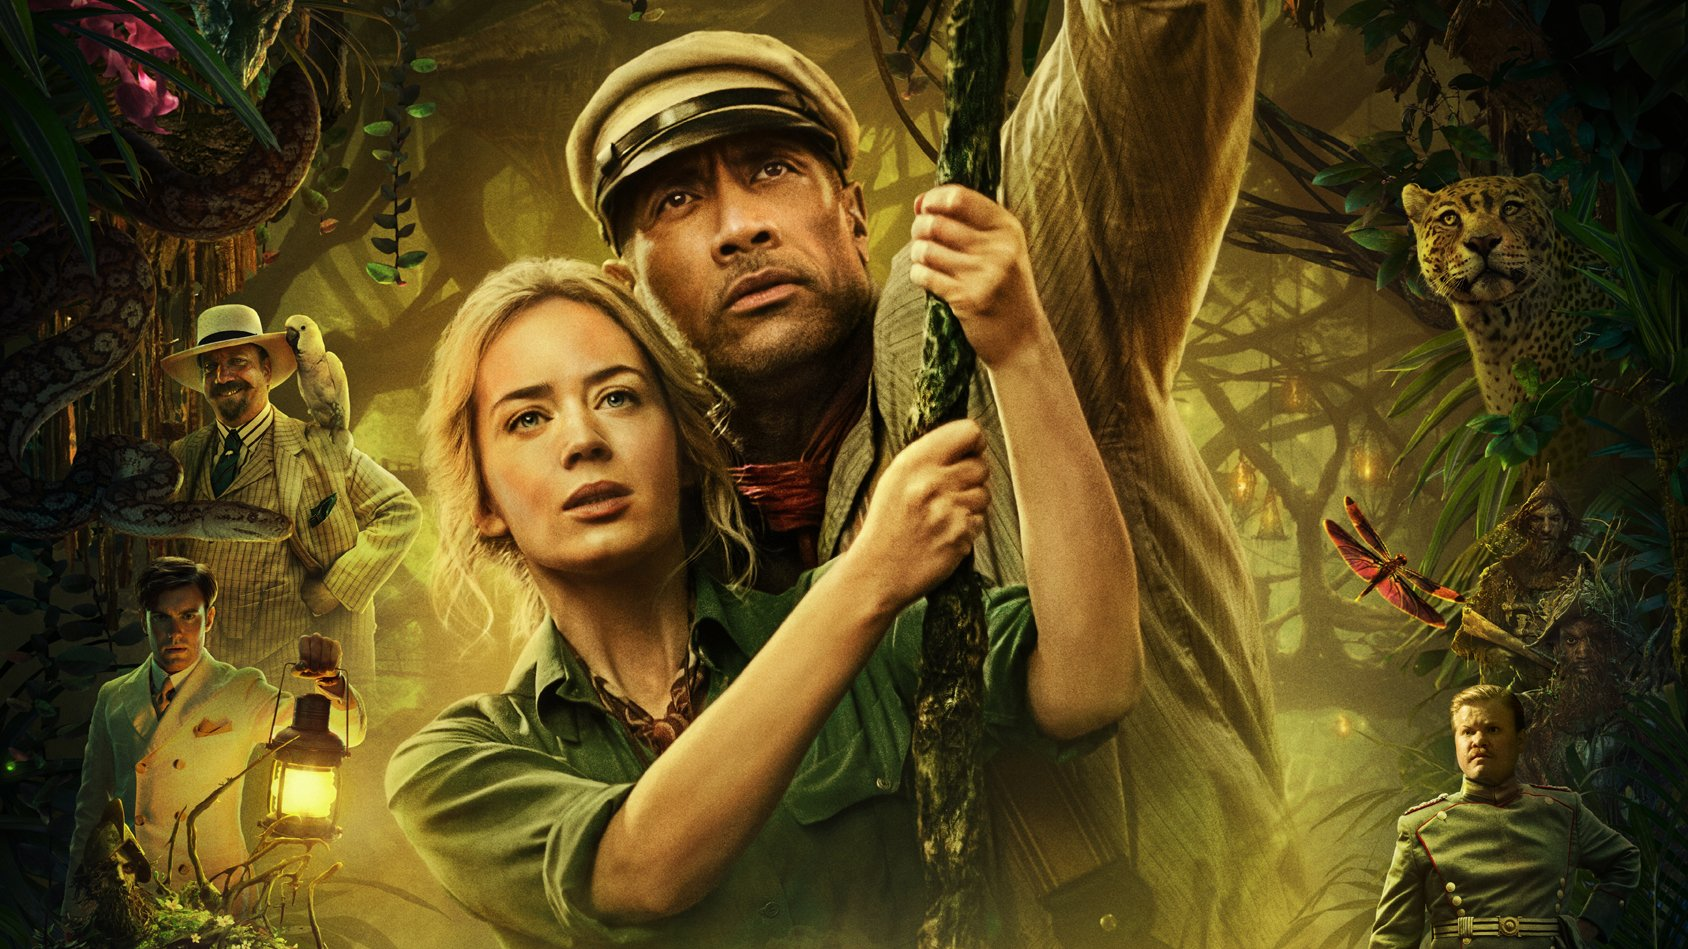 Emily Blunt and the Rock on the Jungle Cruise poster.